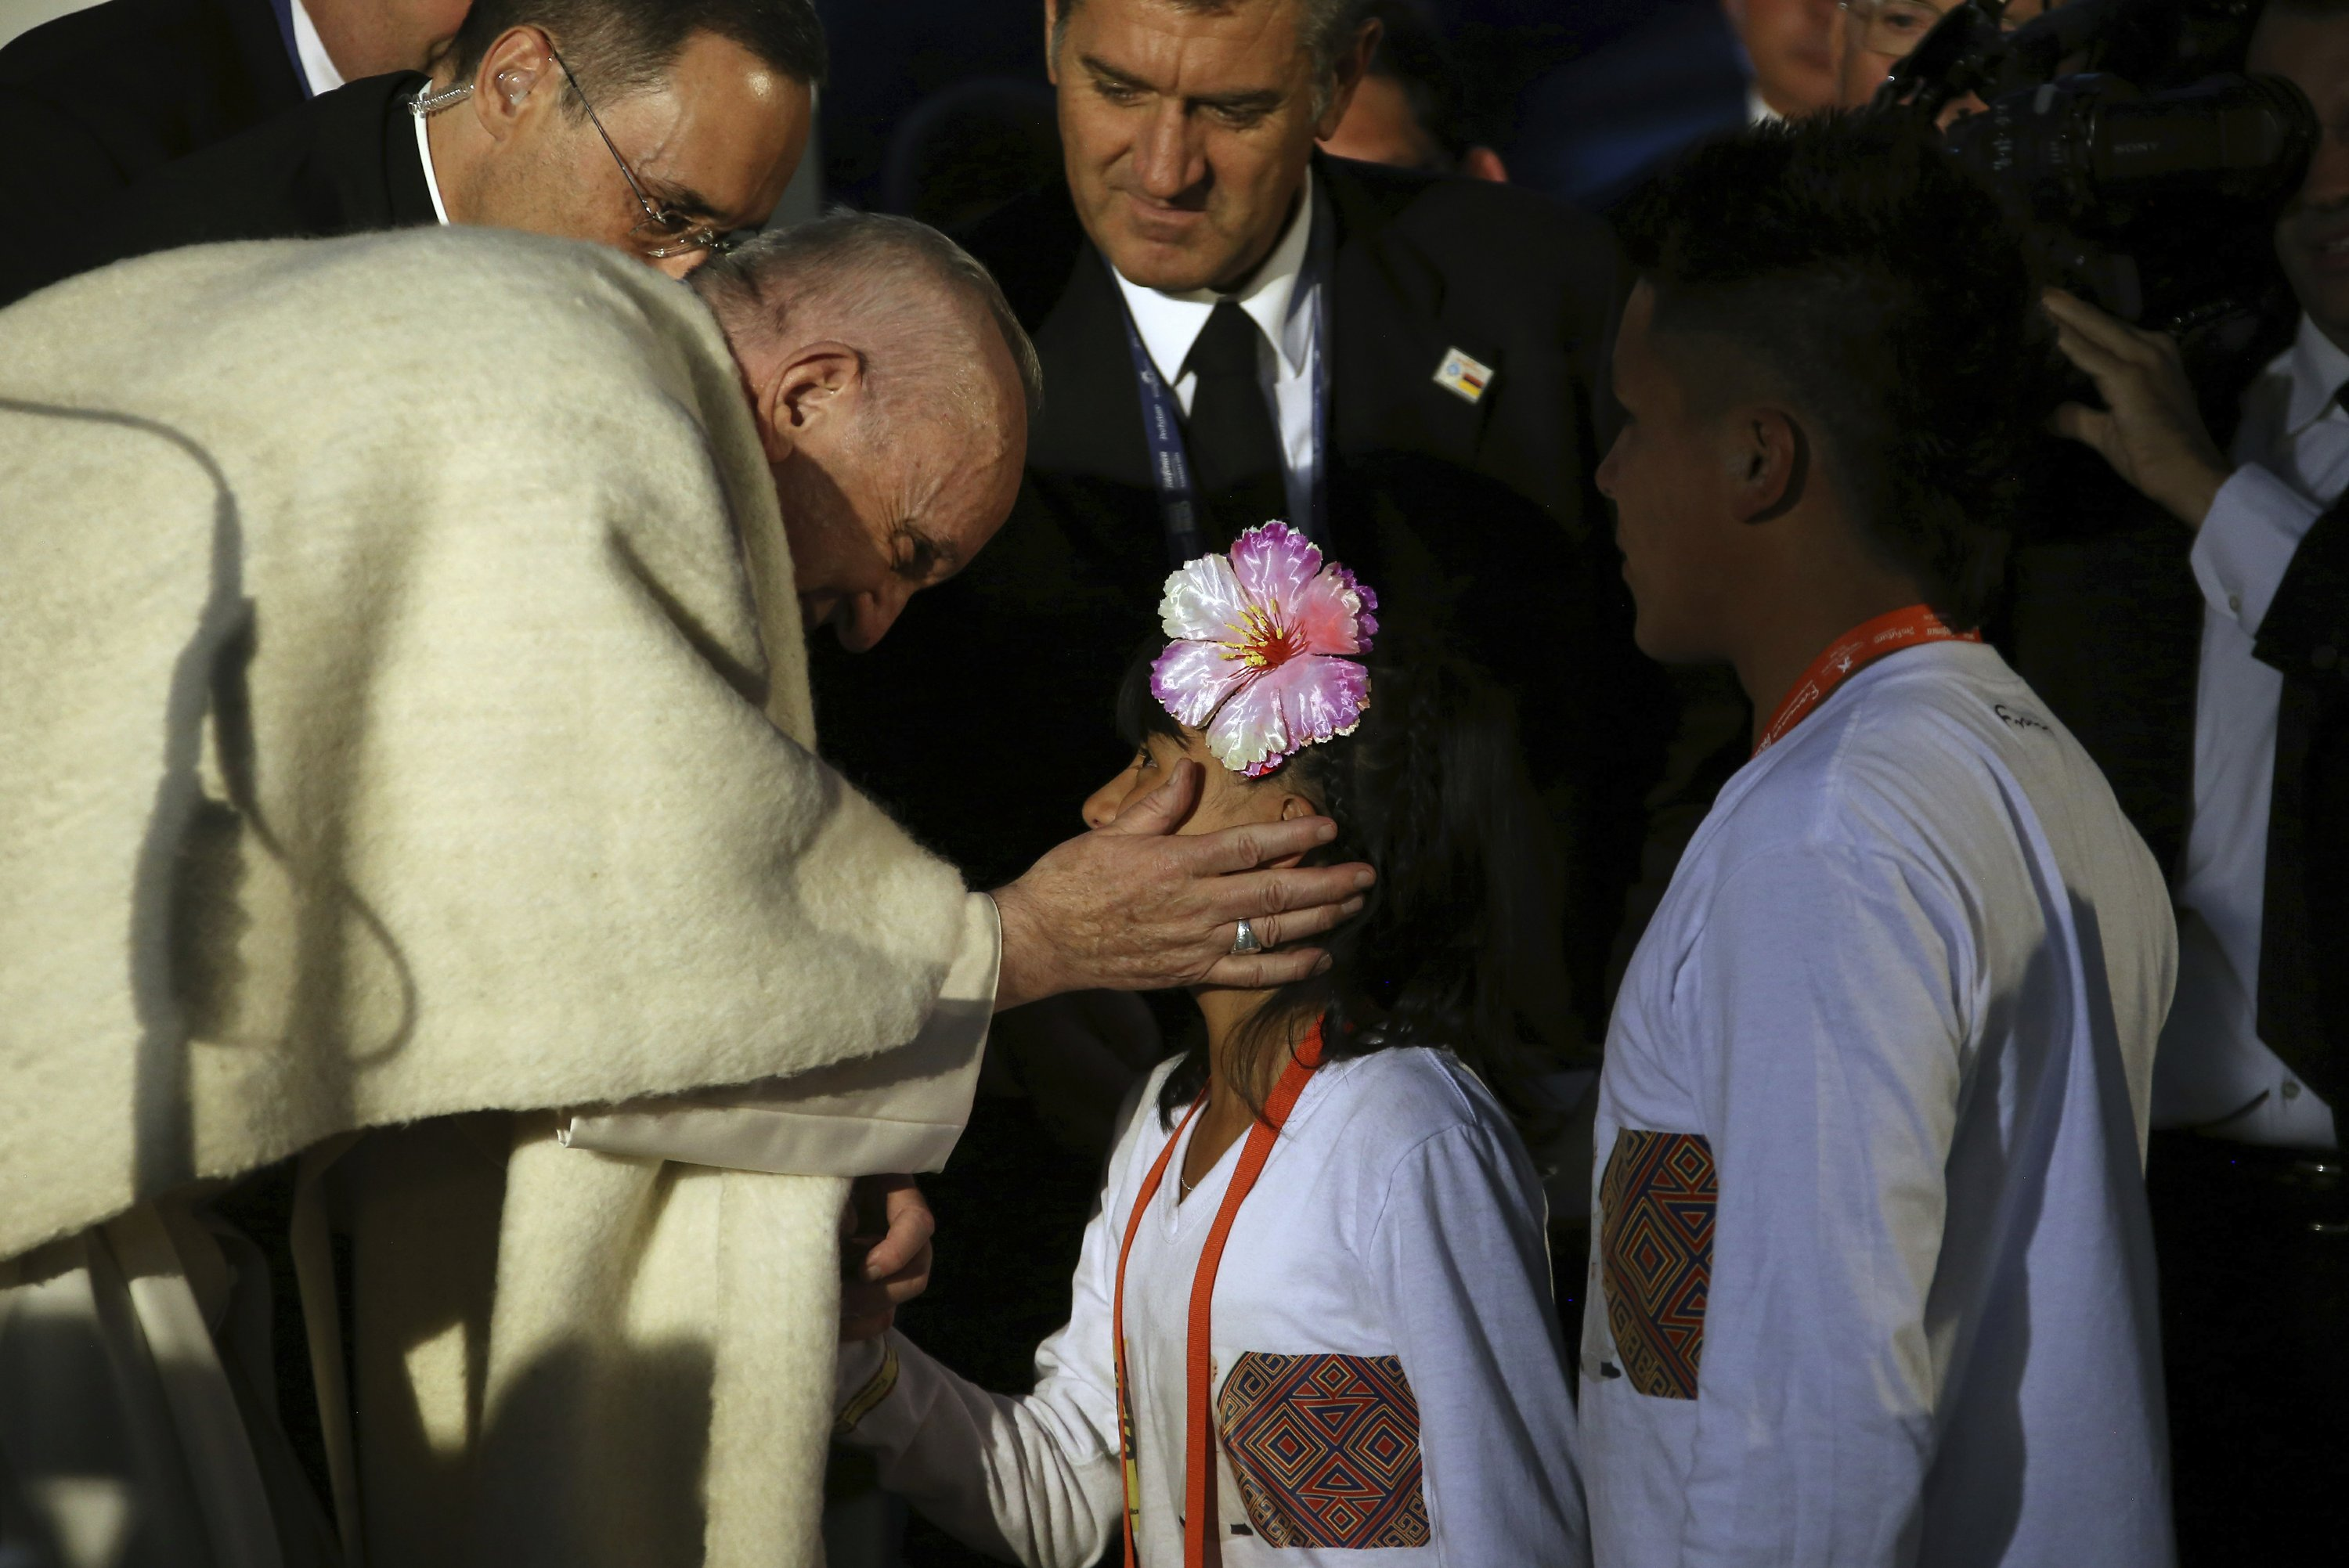 Pope Francis says he brings message of hope to Colombia